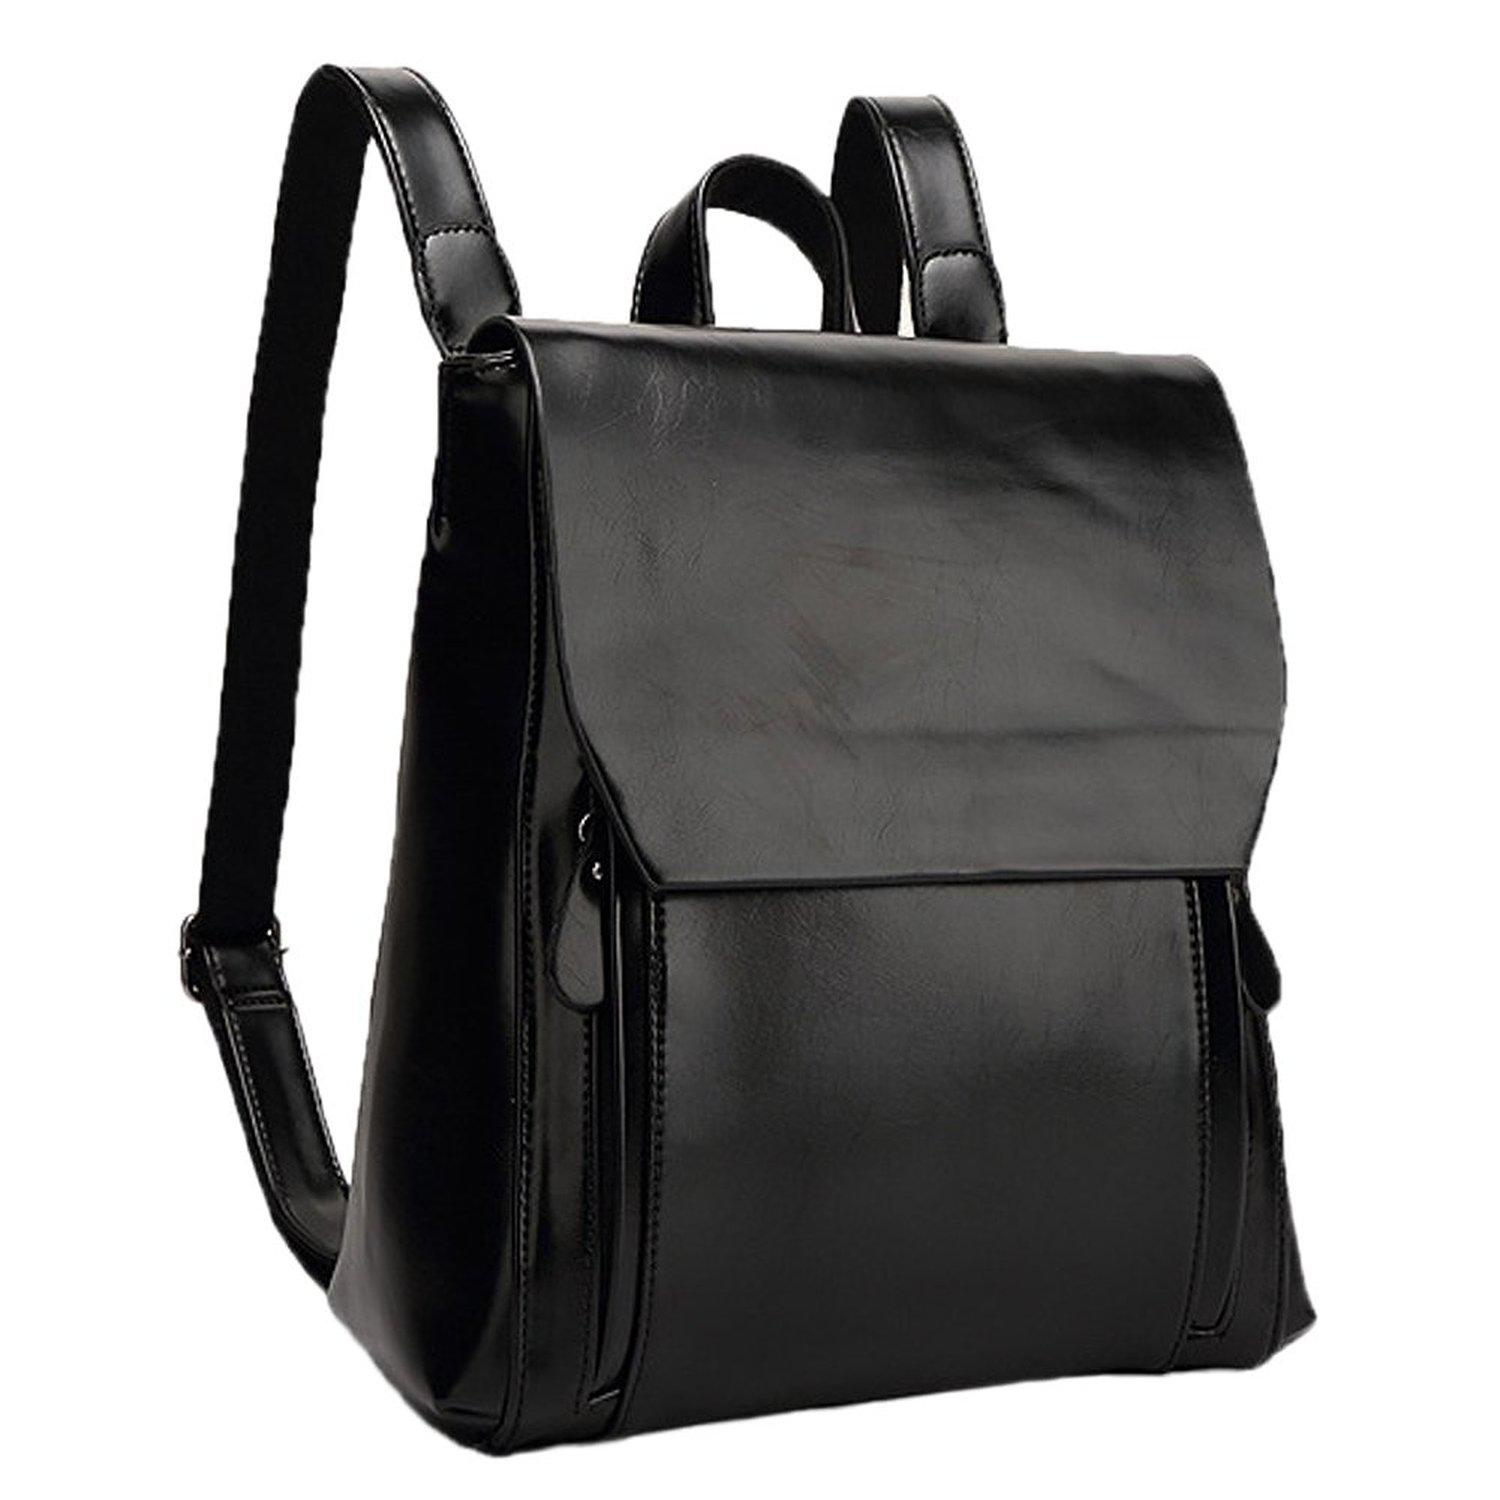 Womens Black Leather Backpack myPYwDhN